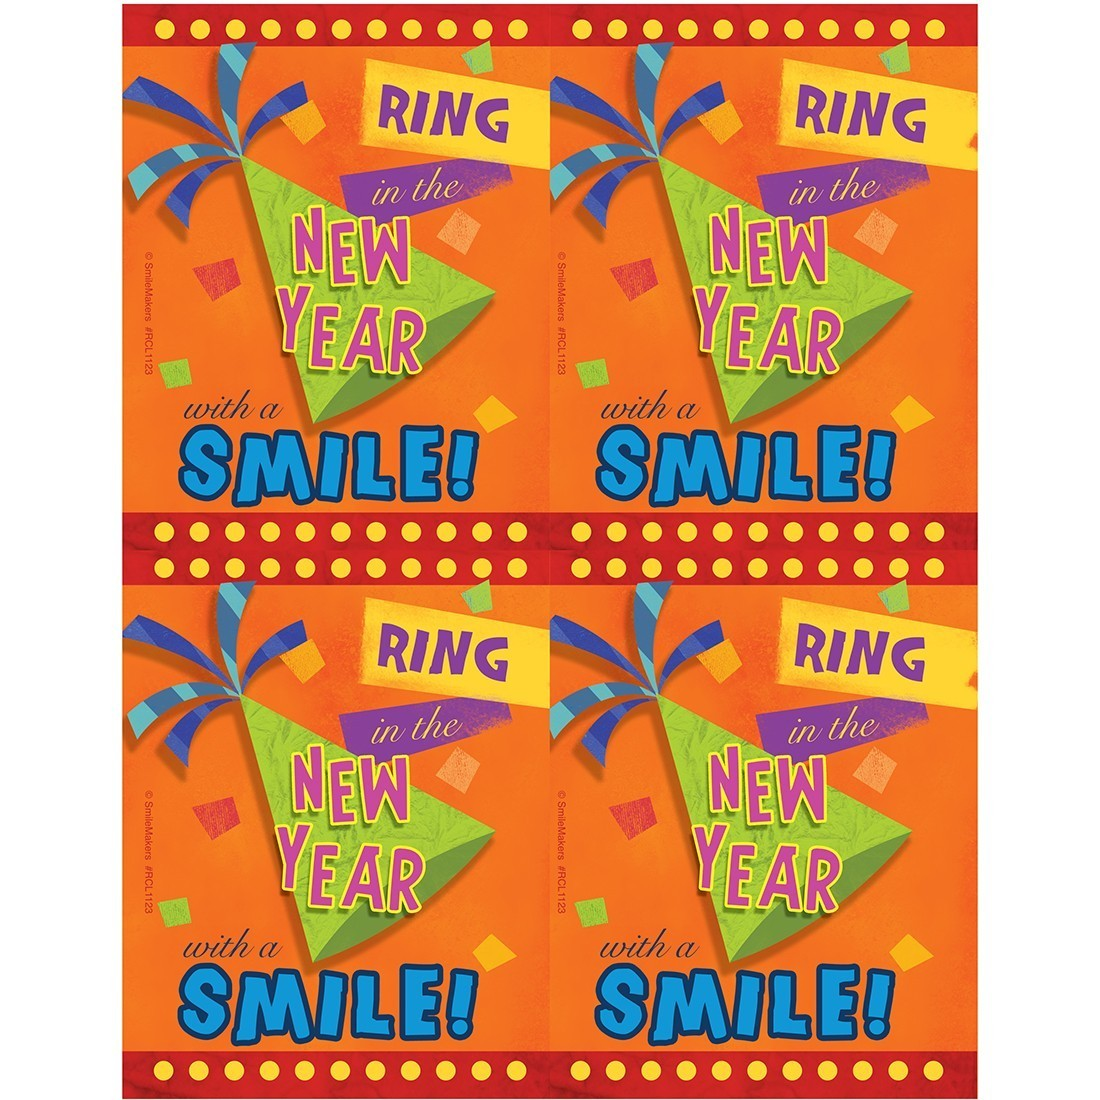 New Year Smile Laser Cards [image]